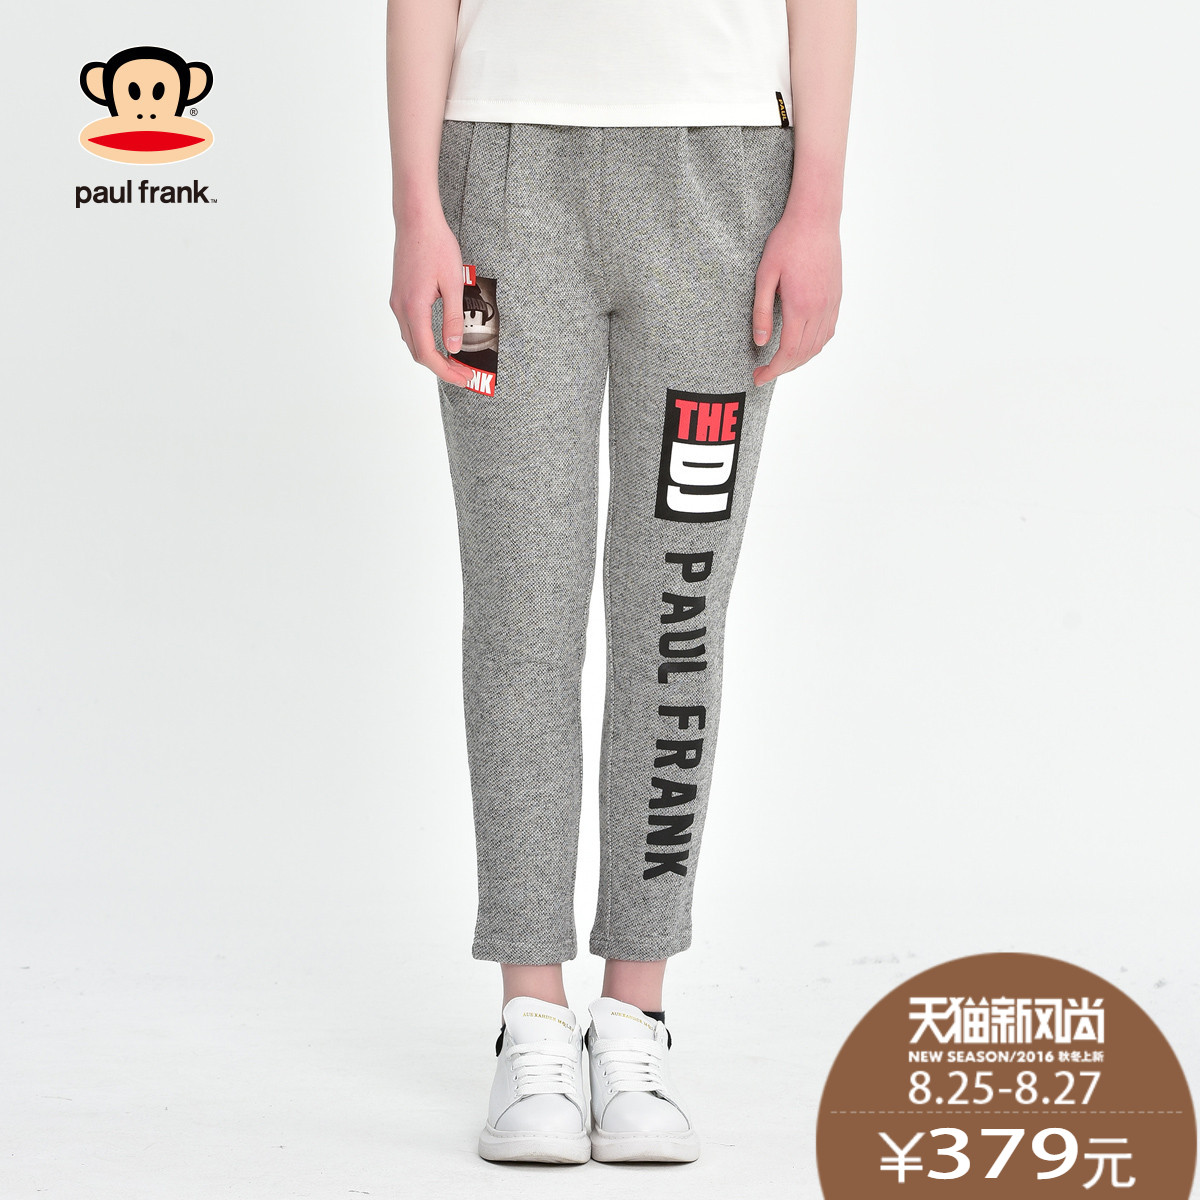 Paul frank/mouth monkey [paragraph] mall with tapered trousers wei pants for women 039 w PFAPT161 bz